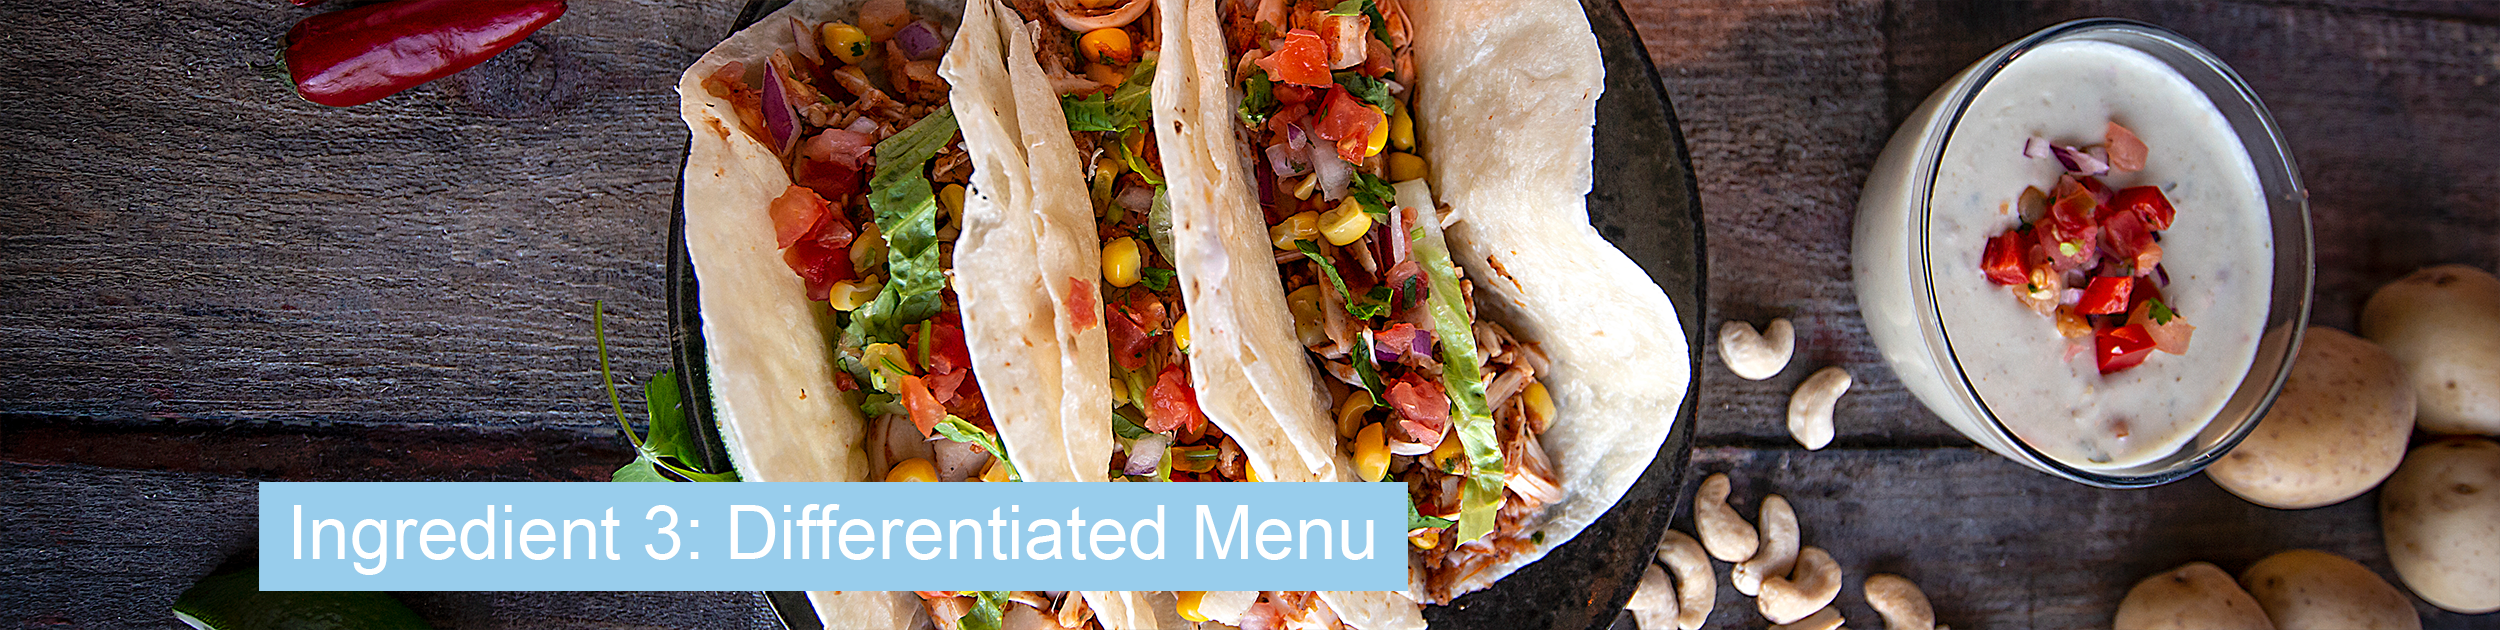 Mexican restaurant franchise opportunity Ing3